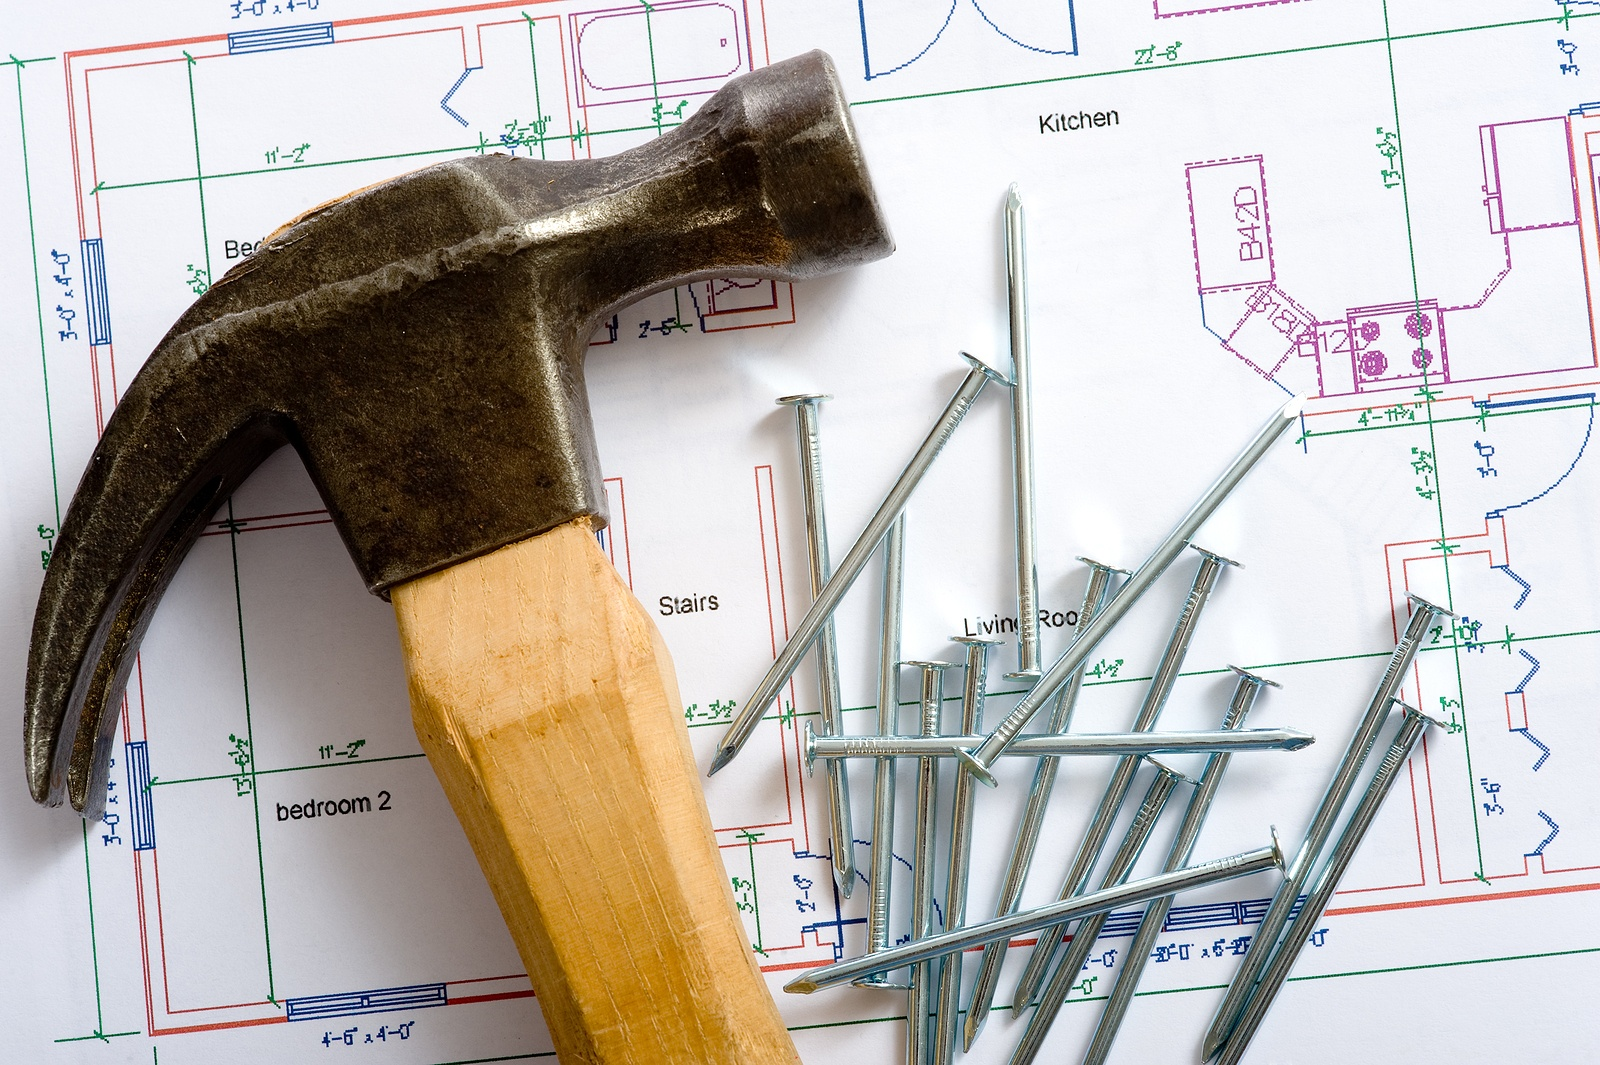 arizona general contractor license course